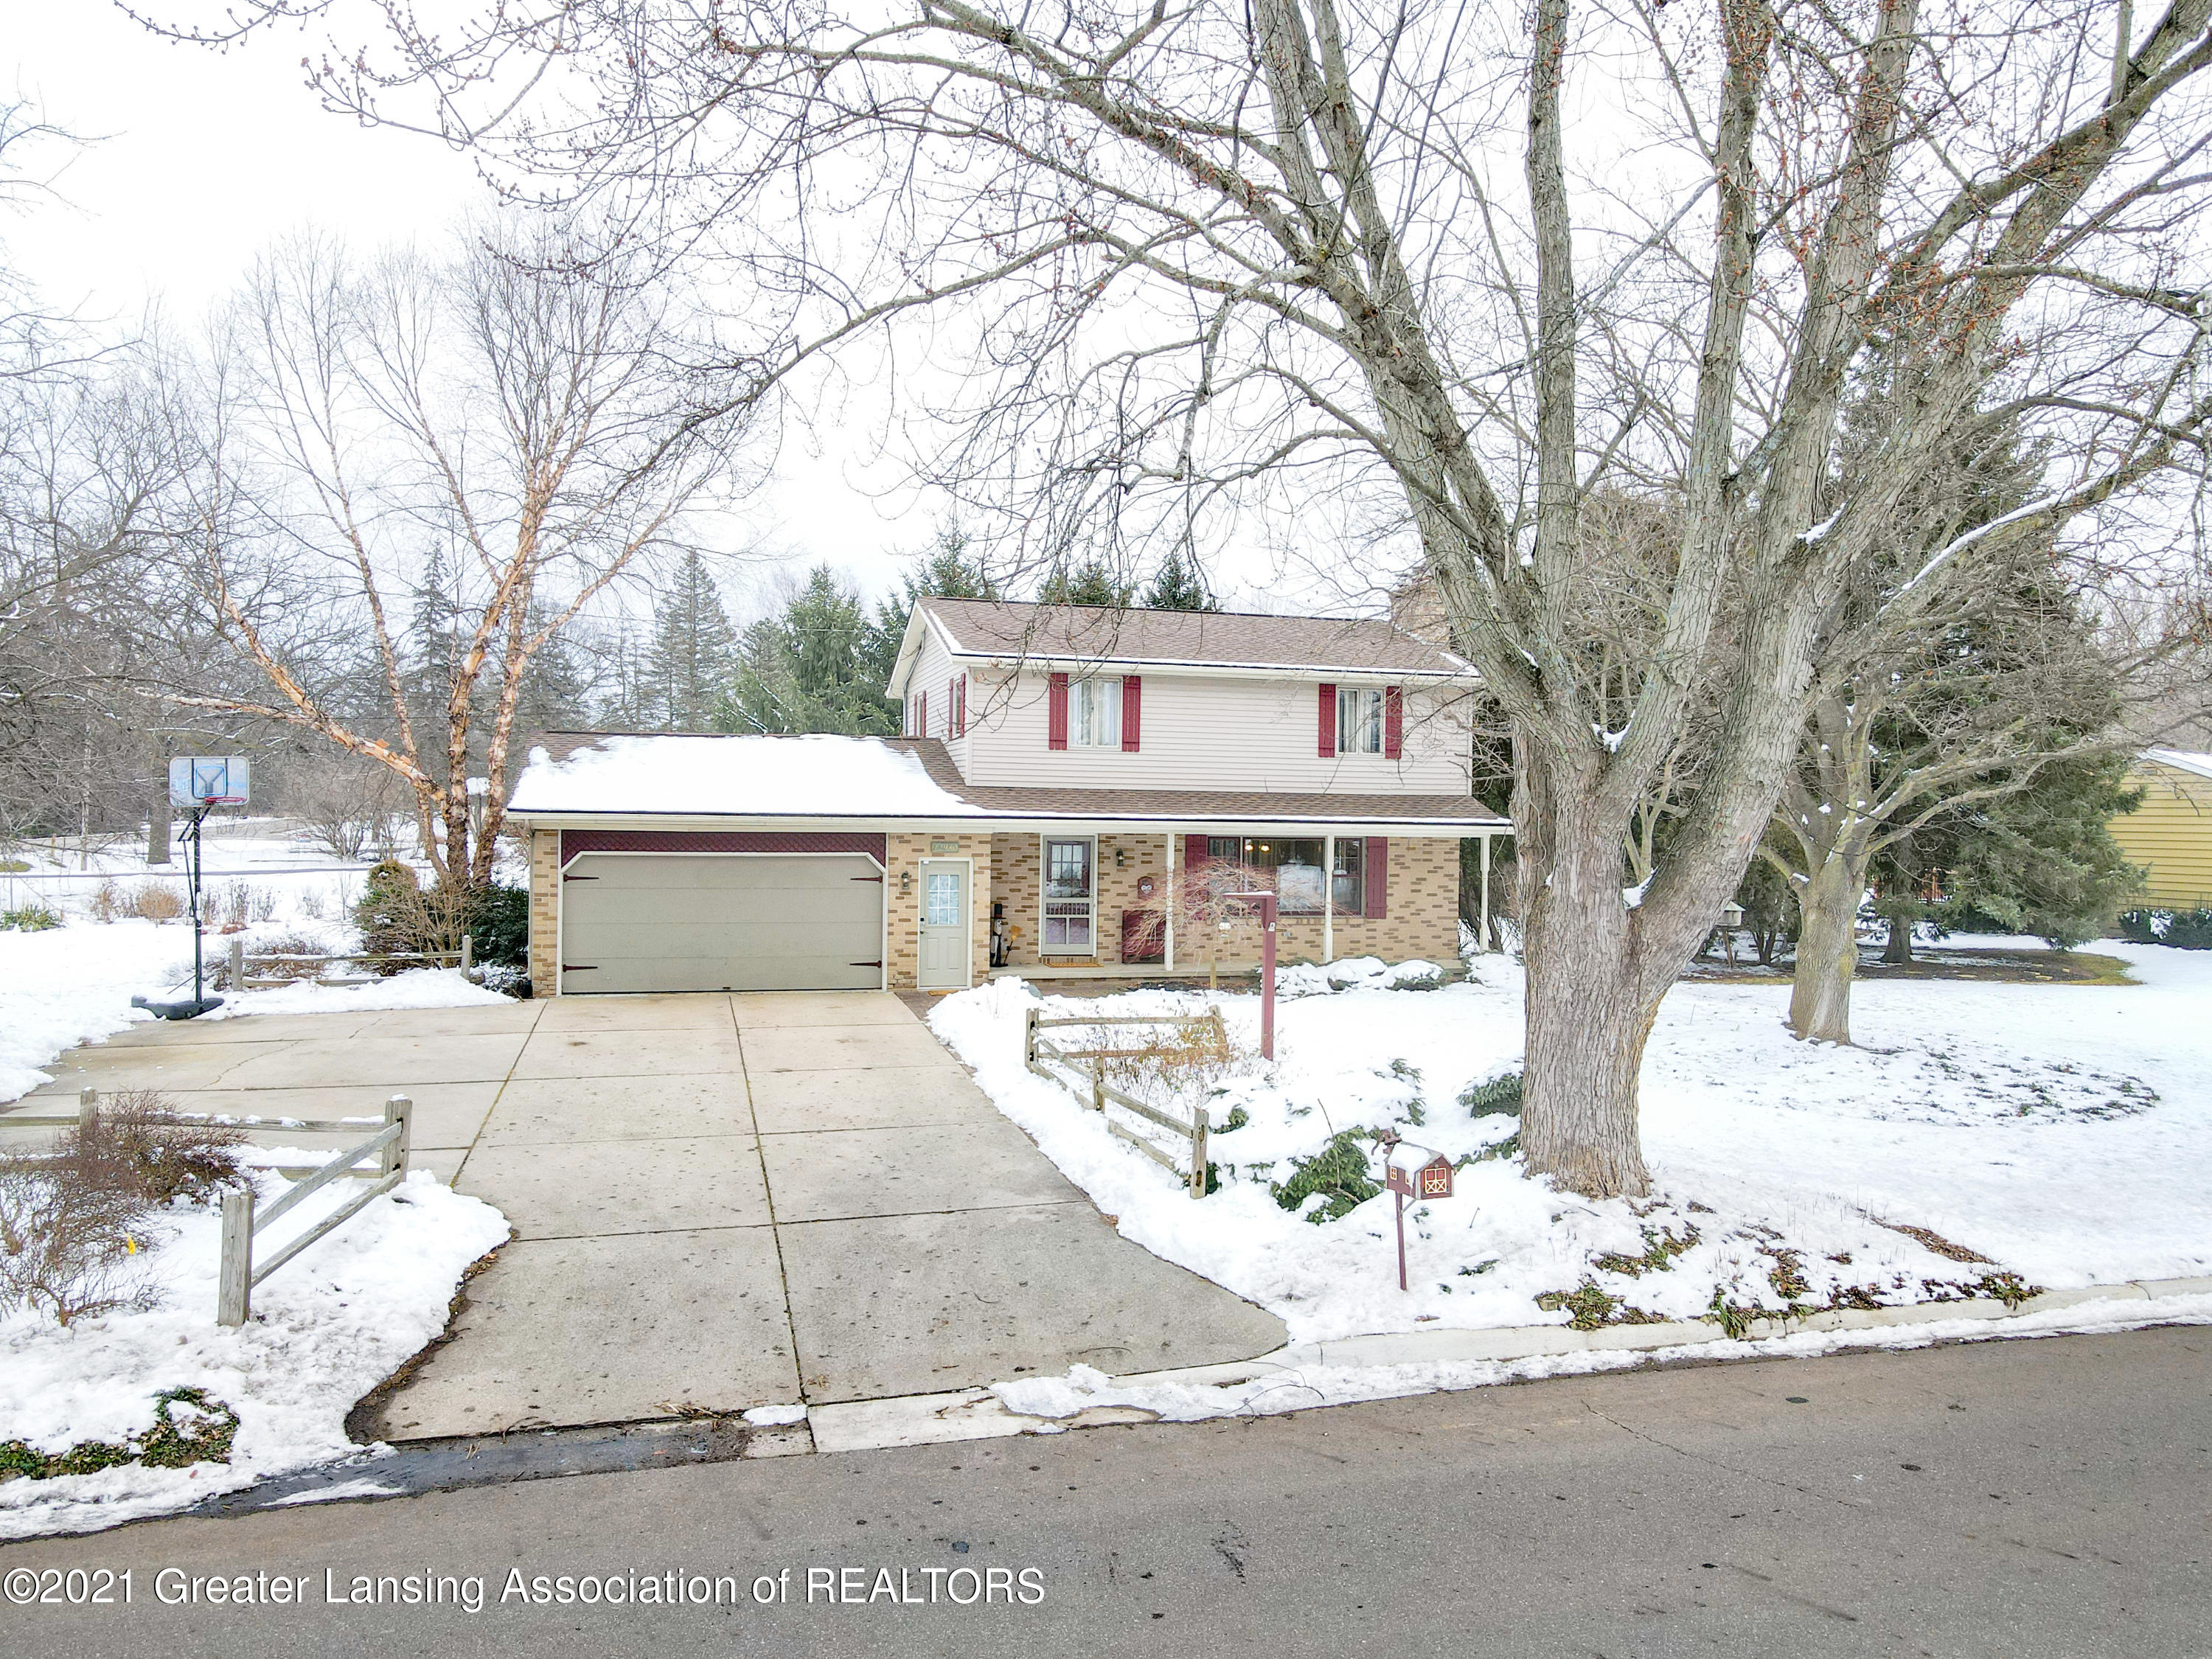 12980 Kingsgate Way - 12980_Kinsgate_Way-4 - 33